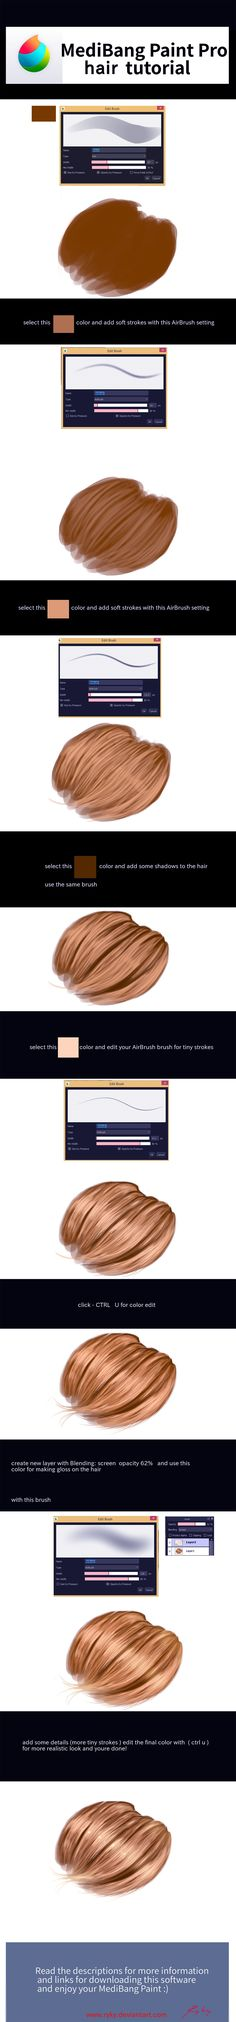 Realistic hair tutorial by ryky.deviantart.com on @DeviantArt